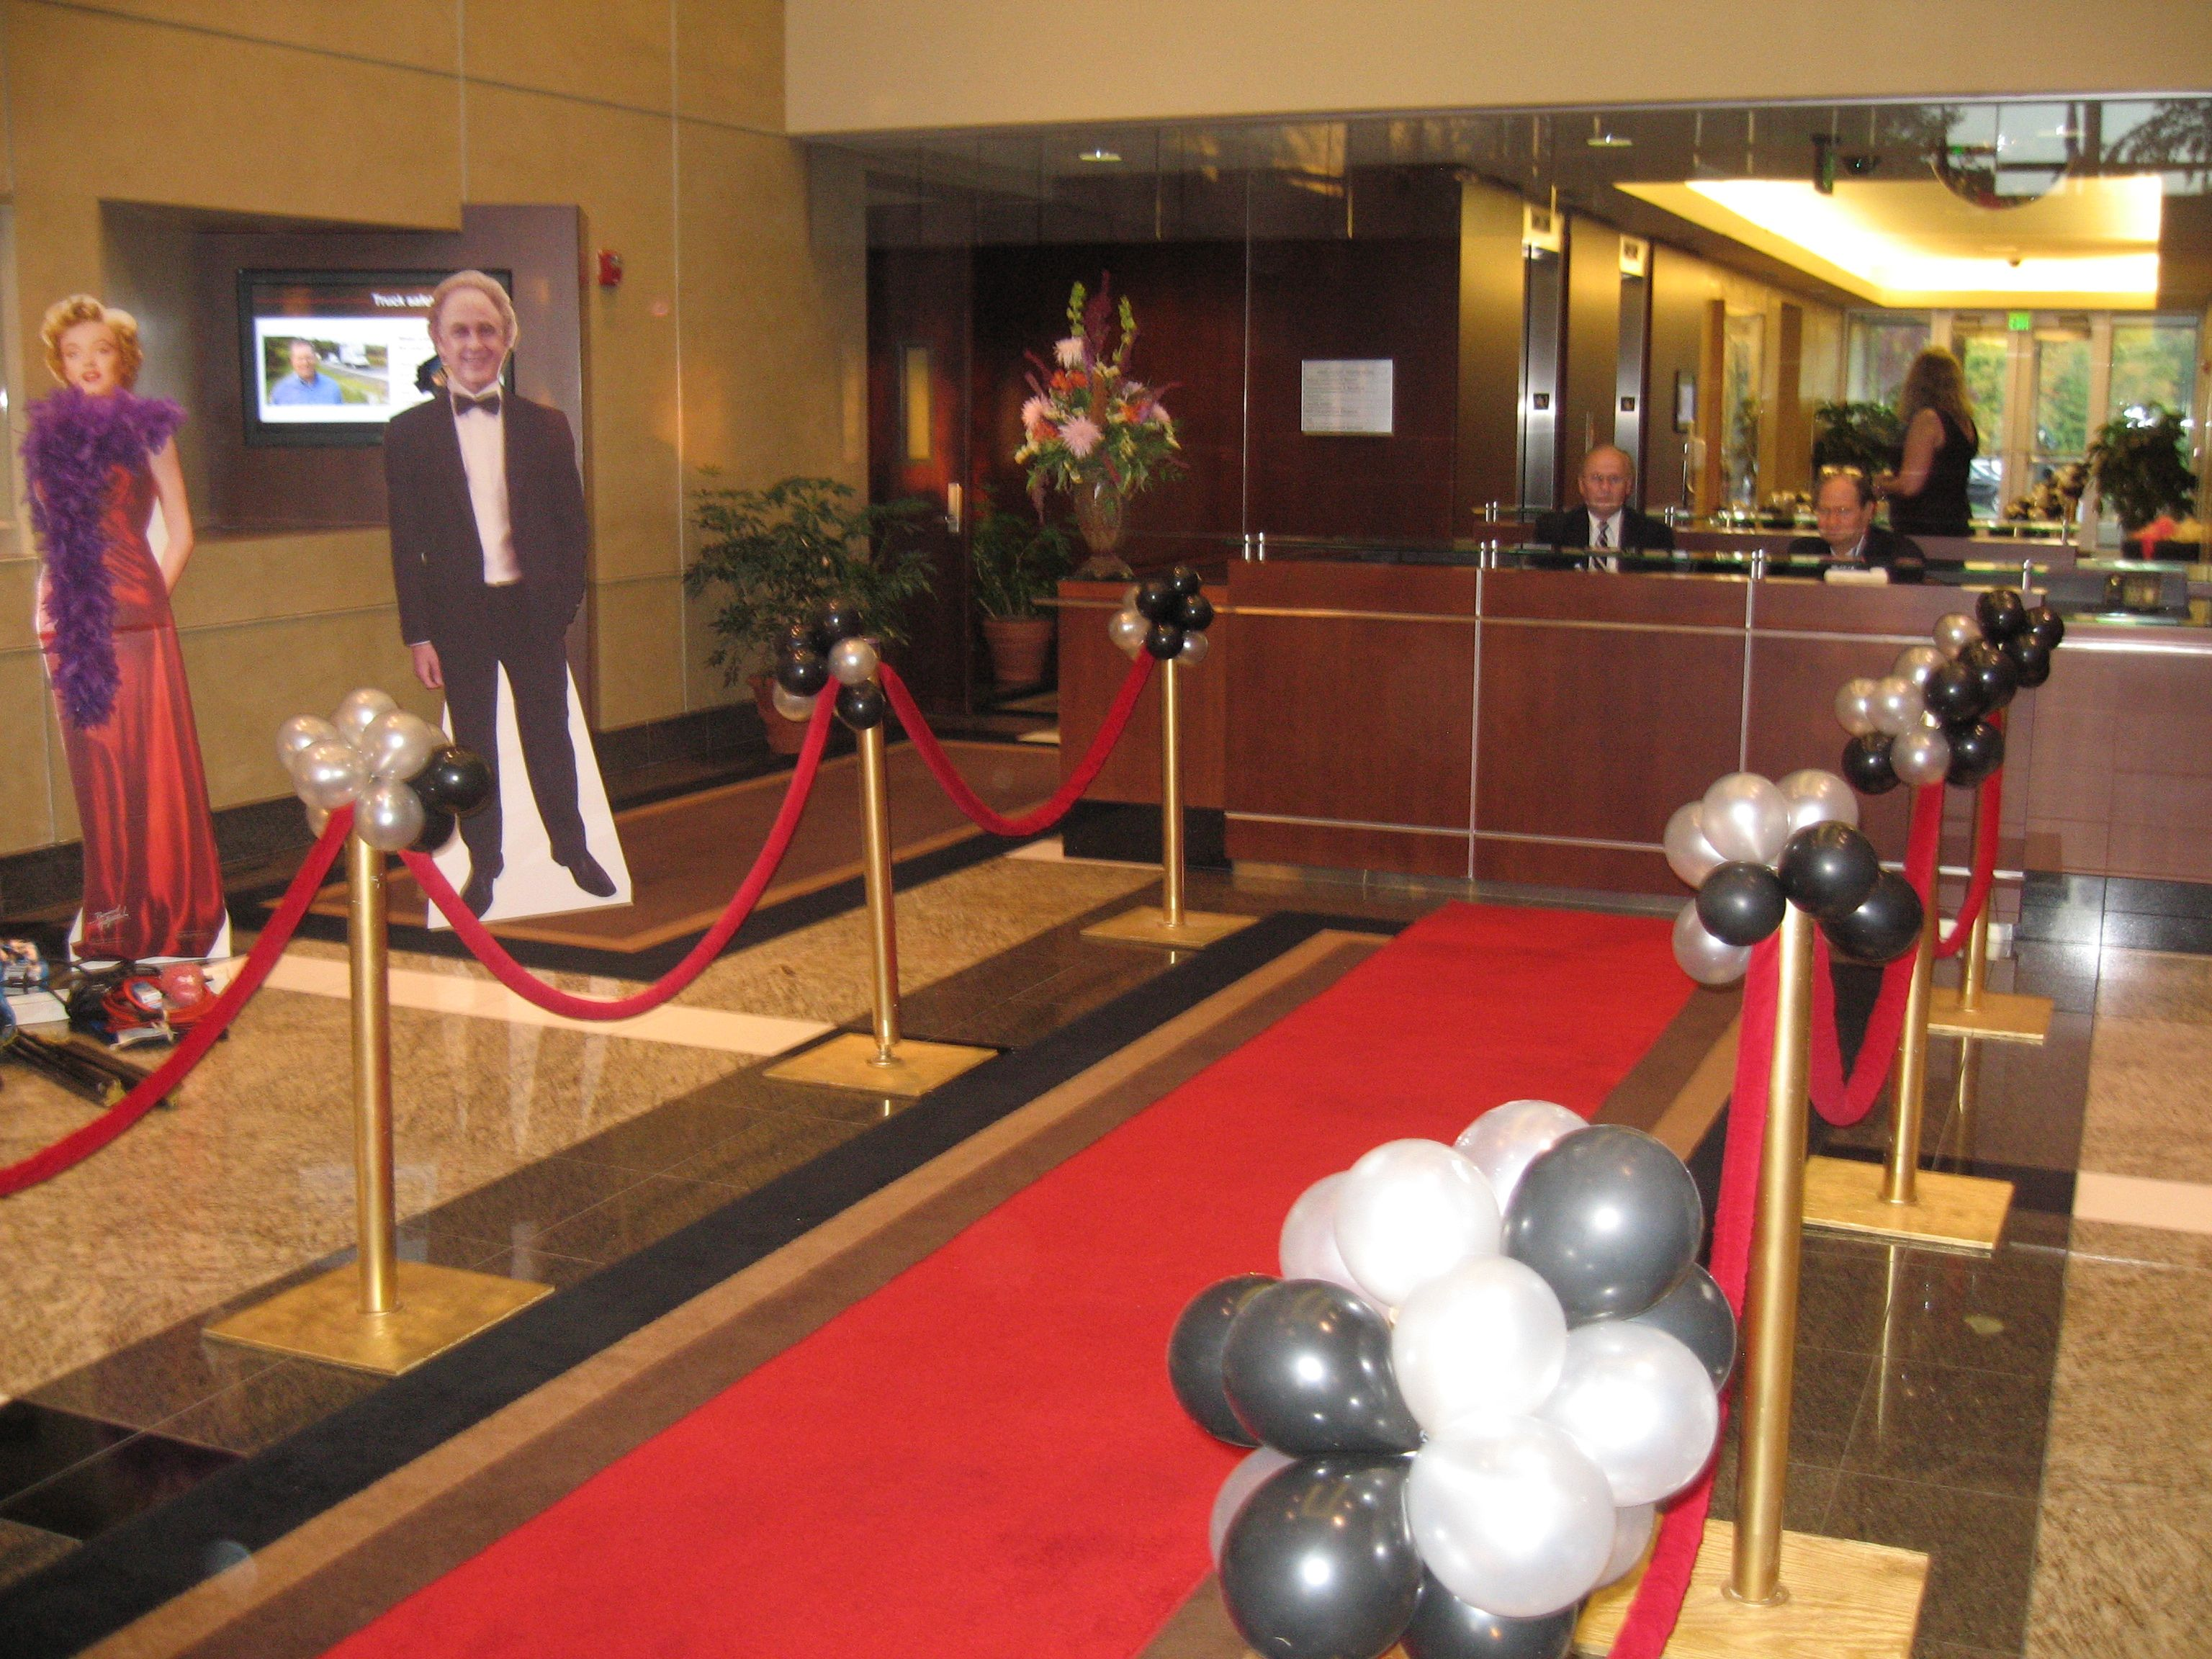 Red carpet for idea for Hollywood Oscar event looks pretty classy